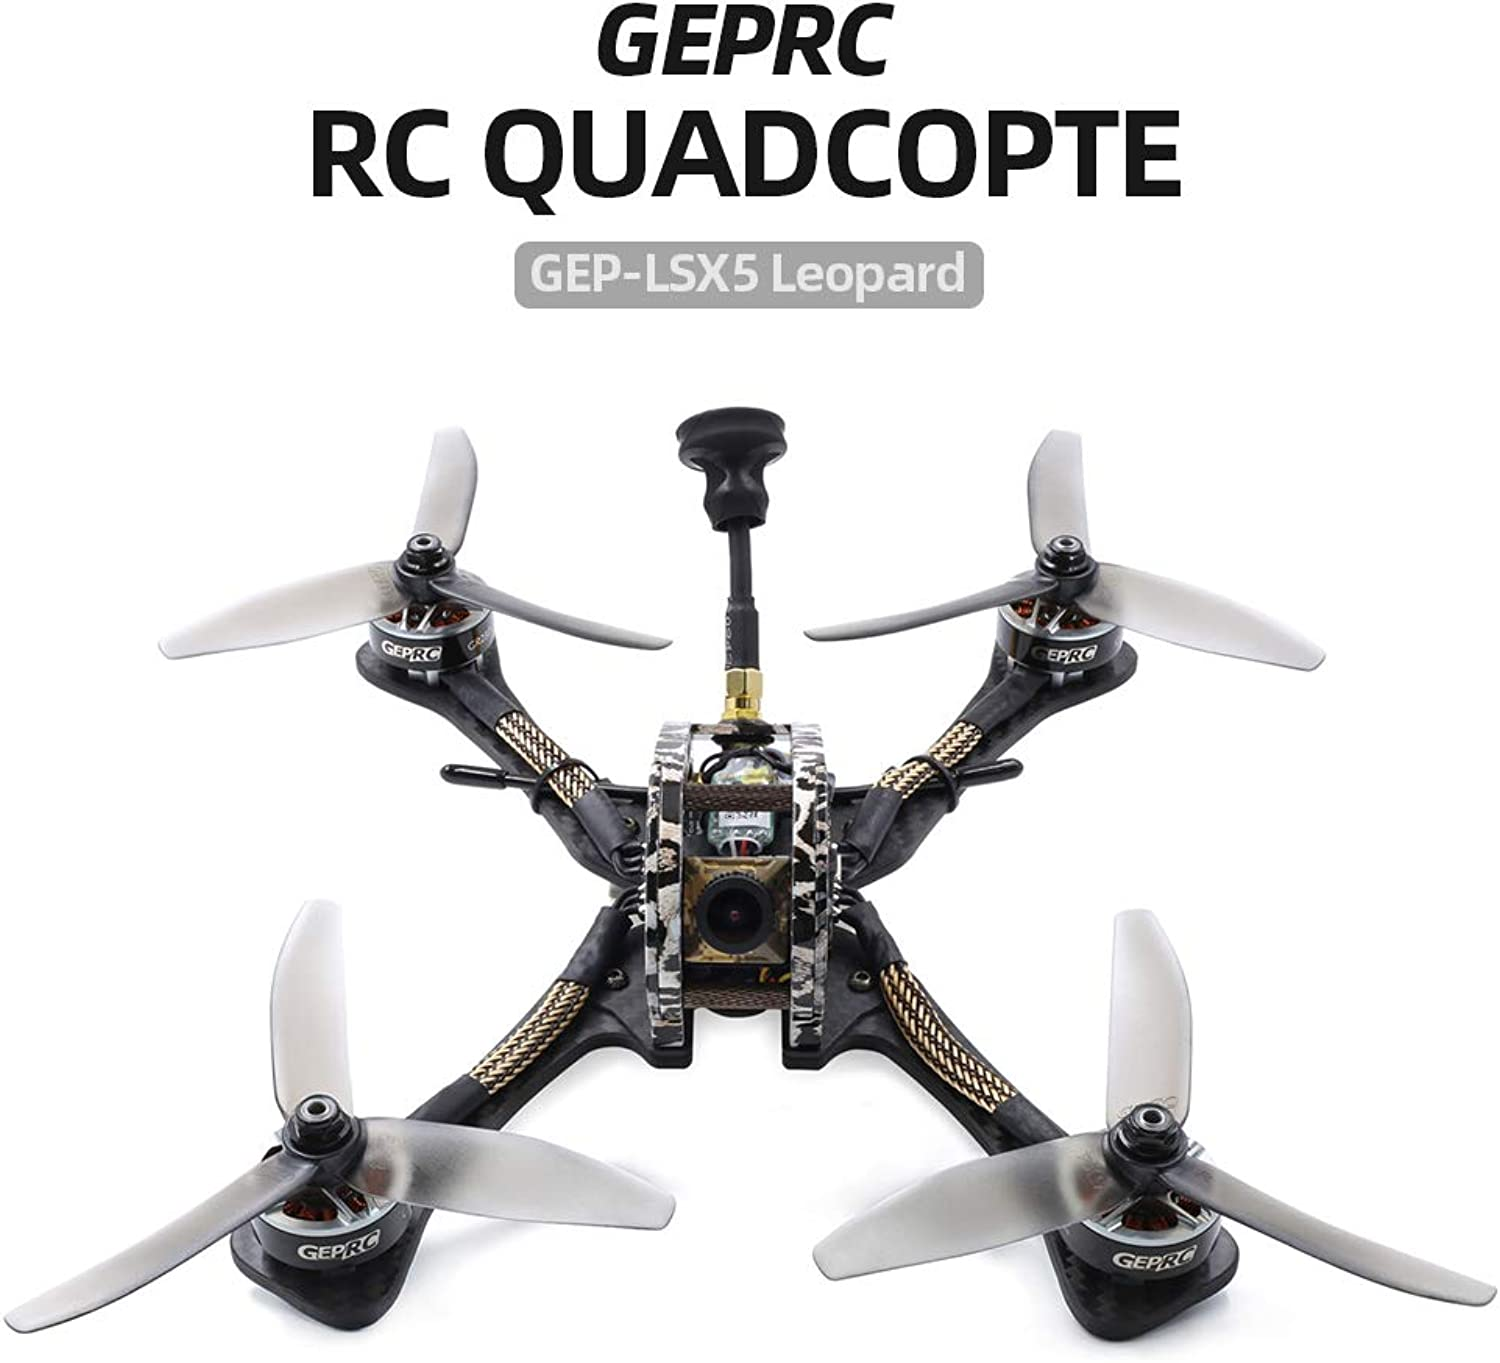 marca Mobiliarbus RC FPV Racing Drone Drone Drone GEPRC GEP-LSX5 Leopard 230 mm 2306 2450 kv Motores Brushless 600TVL Cámara con Receptor Frsky XM BNF Racing  hermoso